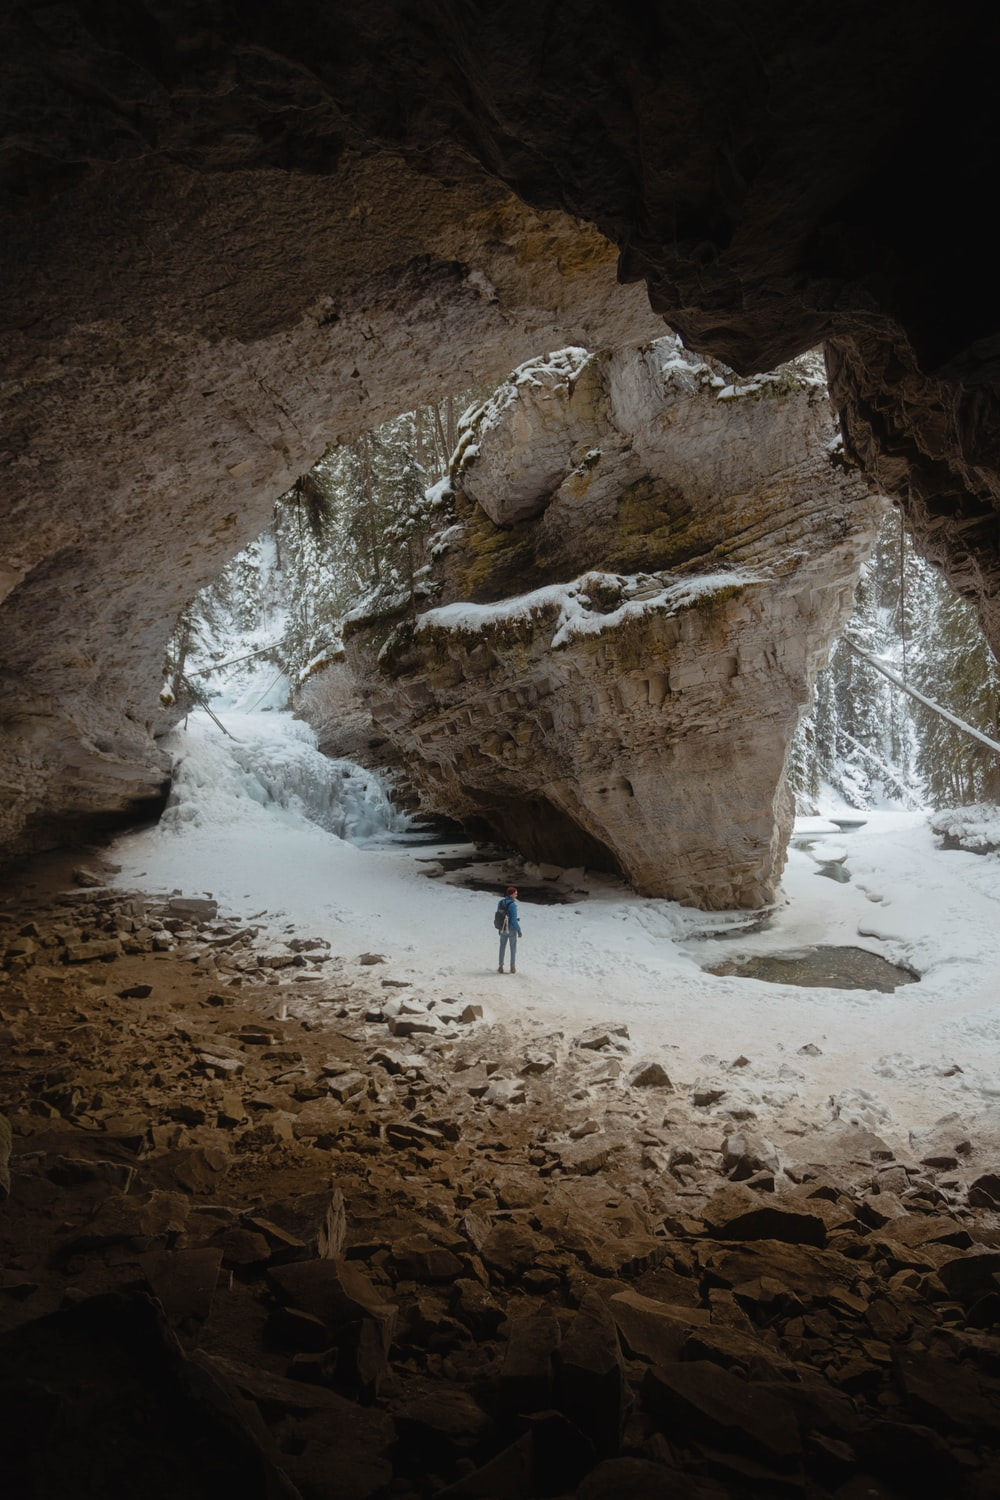 person standing between large rock formation filled with snow